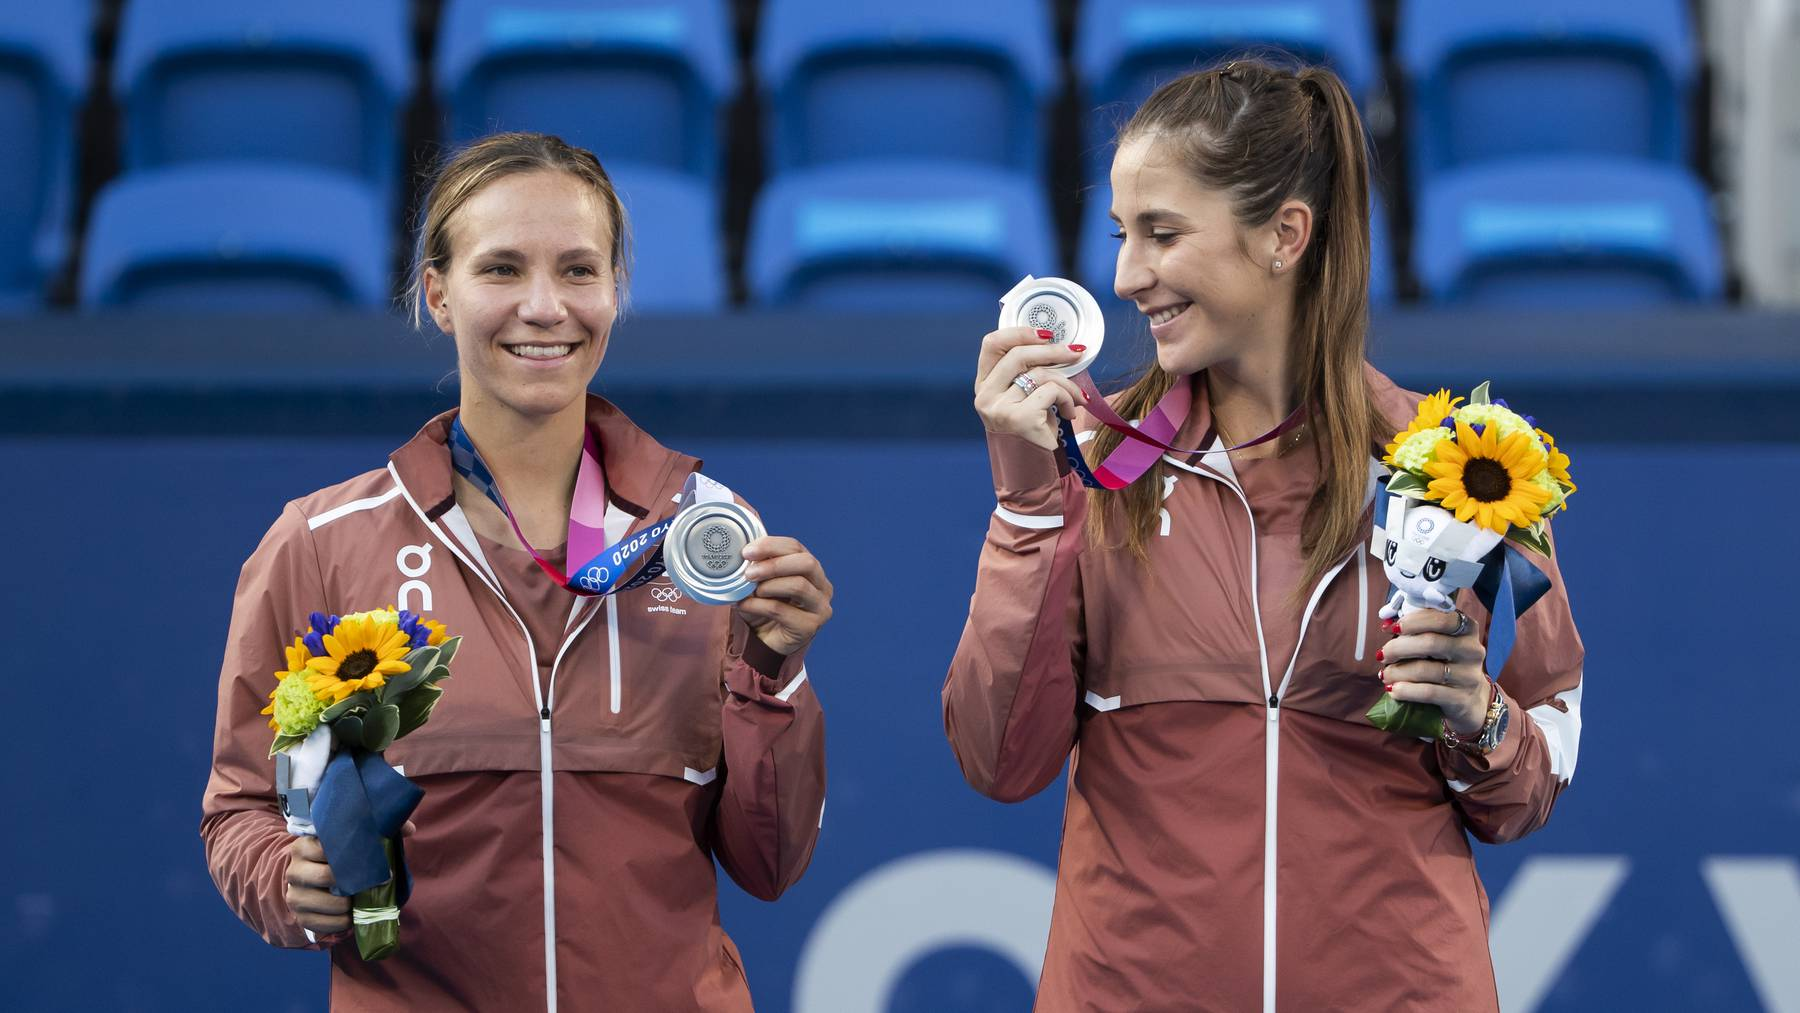 Belinda Bencic, right, and Viktorija Golubic of Switzerland pose with their silver medals on the podium afteer the women's tennis doubles gold medal match against Barbora Krejcikova and Katerina Siniakova of The Czech Republic at the 2020 Tokyo Summer Olympics in Tokyo, Japan, on Sunday, August 01, 2021.